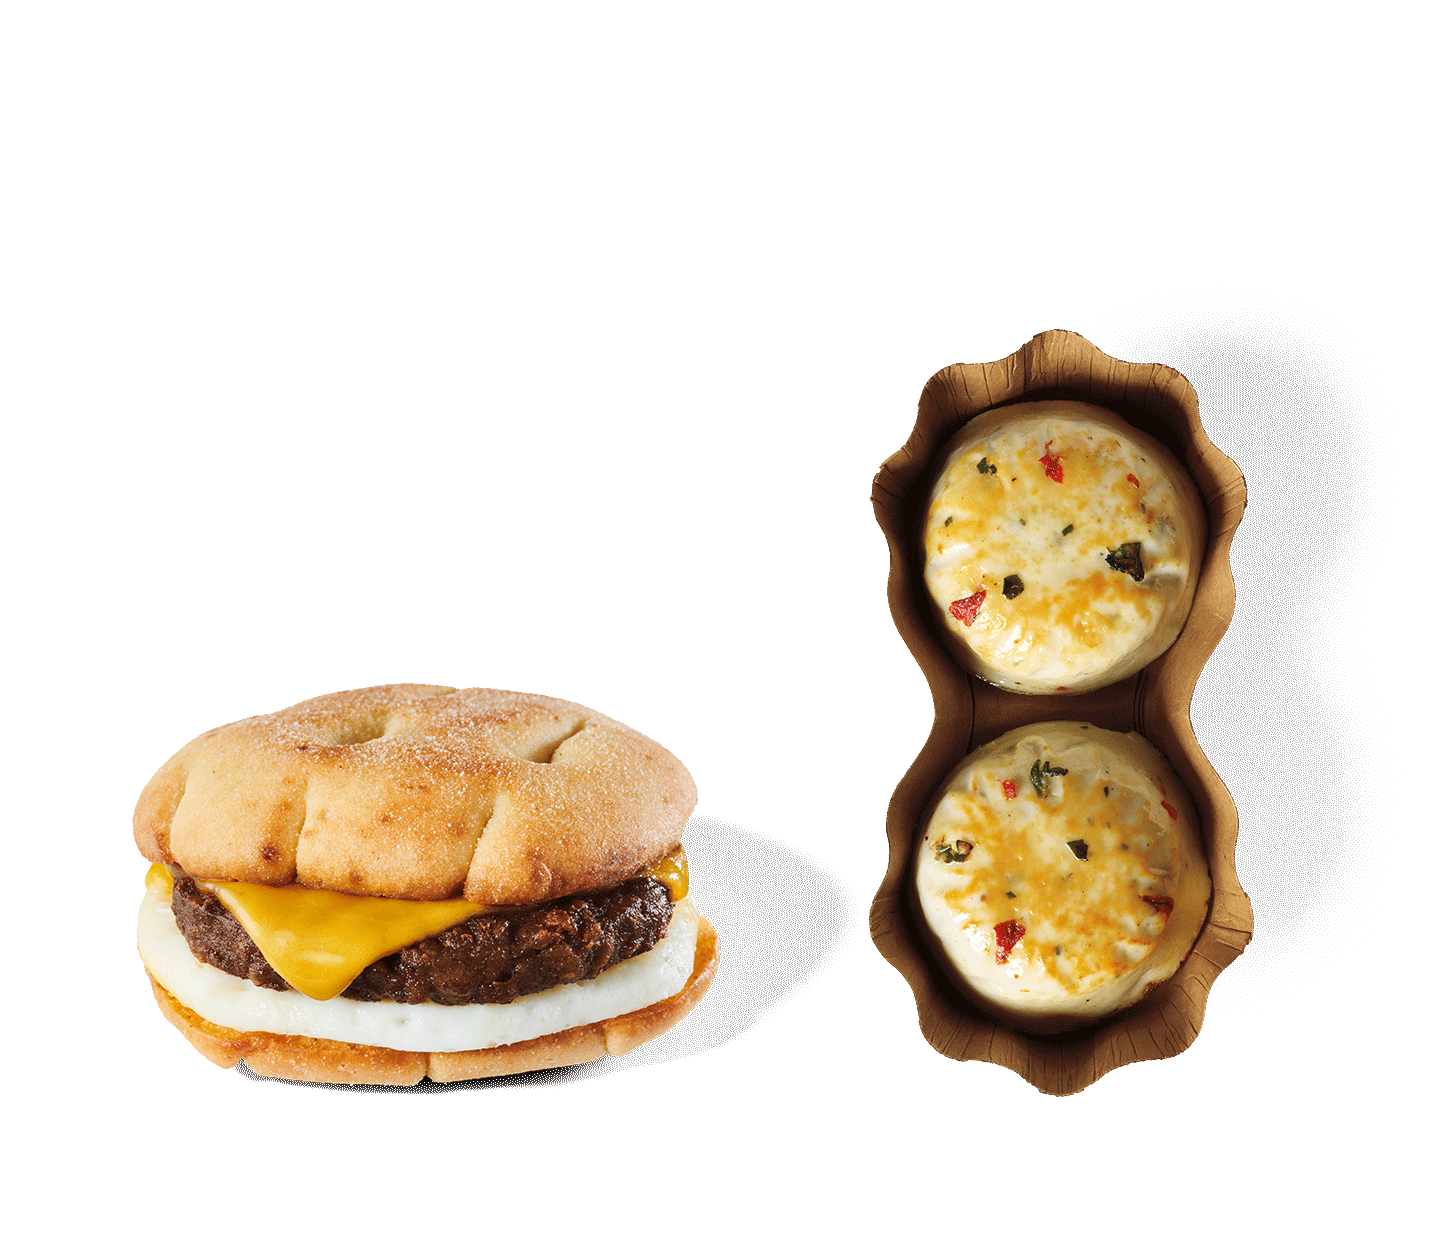 Beyond Meat®, Cheddar & Egg Sandwich and Egg White & Roasted Red Pepper Sous Vide Egg Bites.